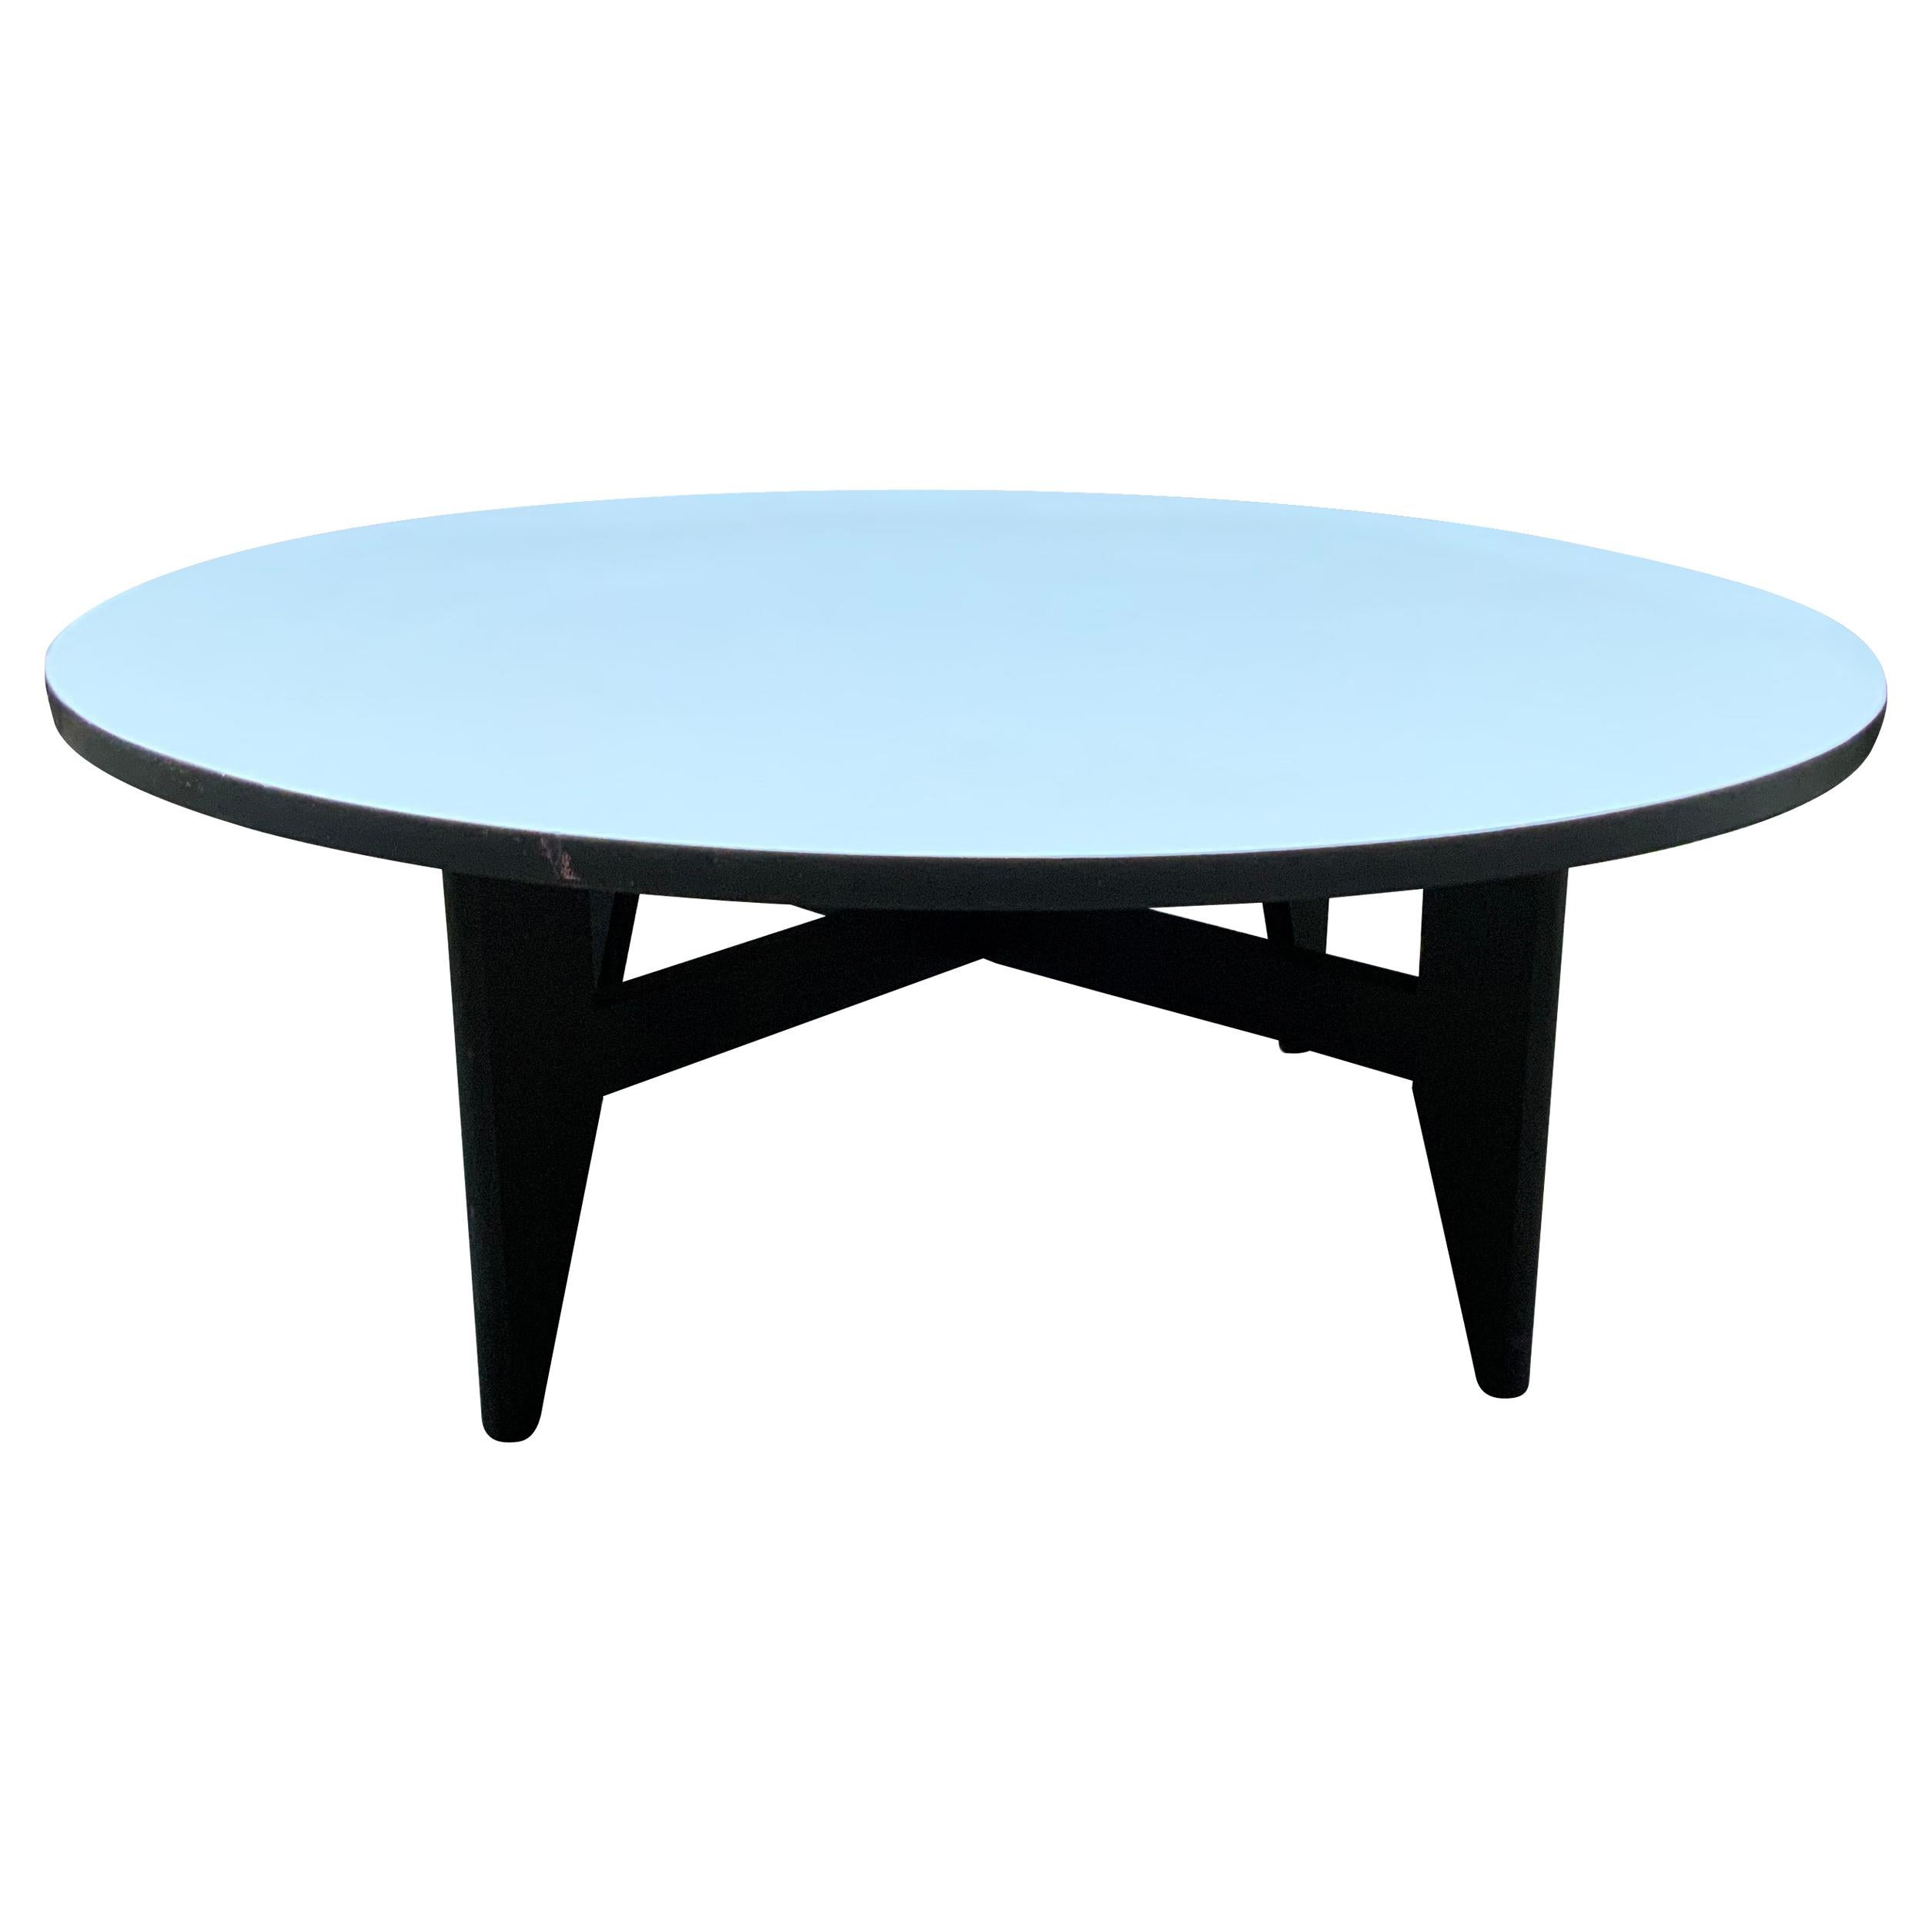 George Nelson for Herman Miller Round Coffee Table